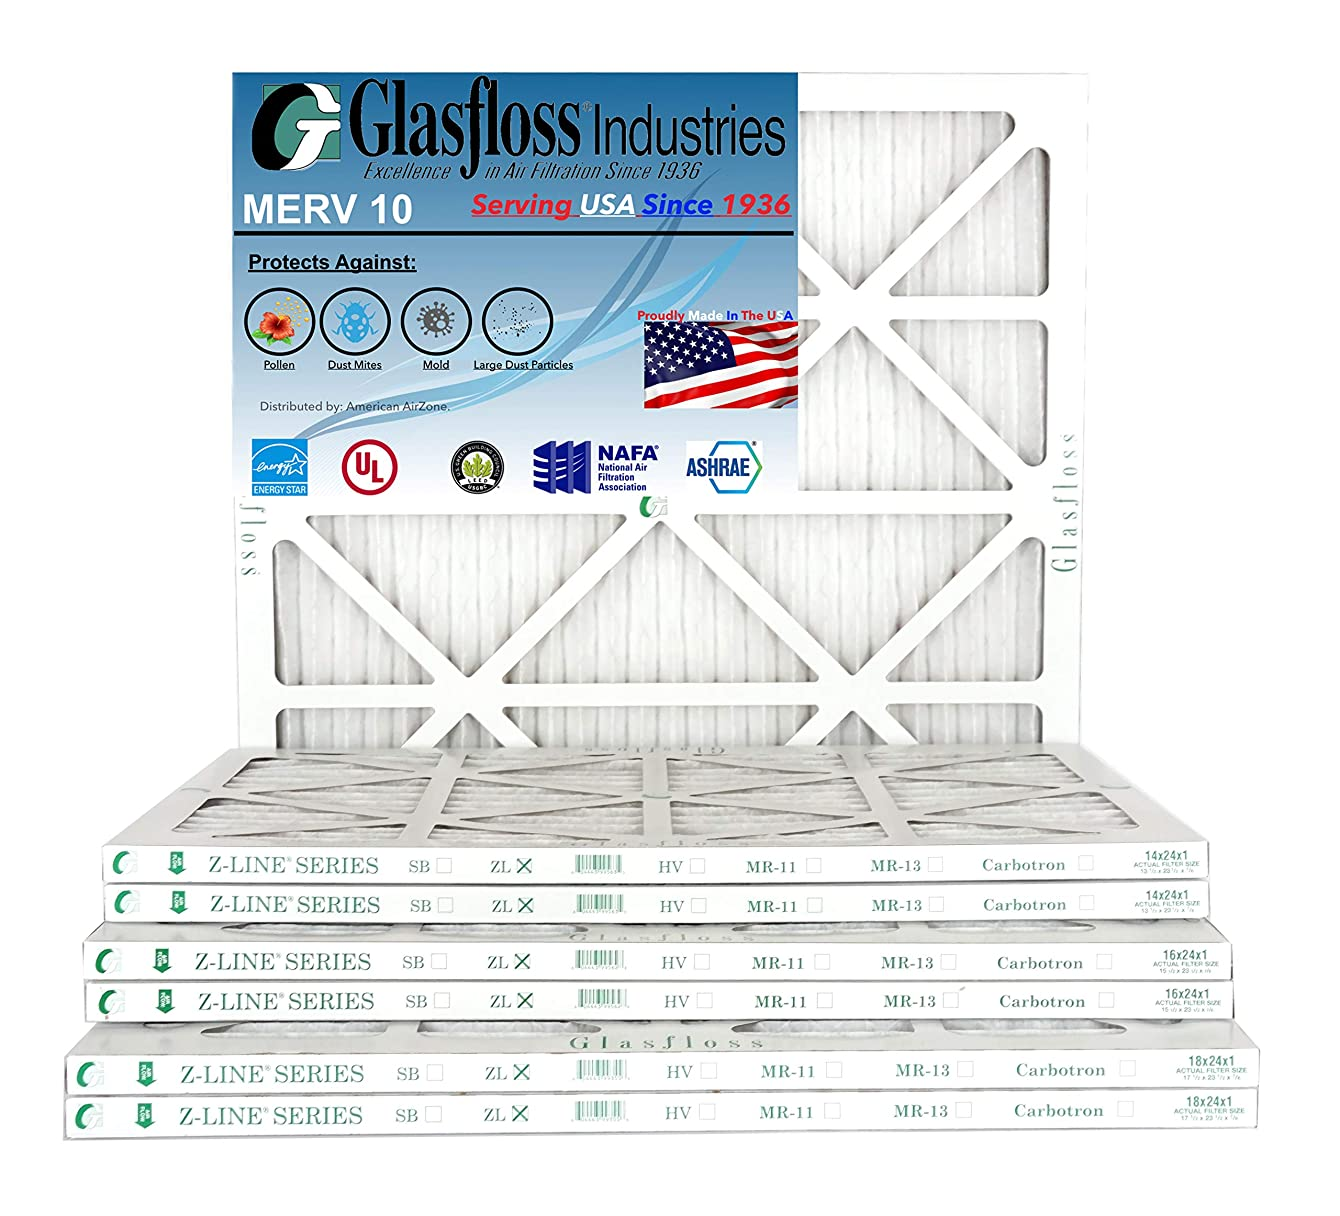 Glasfloss 14x24x1, 1 Inch MERV 10 Pleated AC Furnace Filter- (Pack of 12)- Proudly Made In The USA.